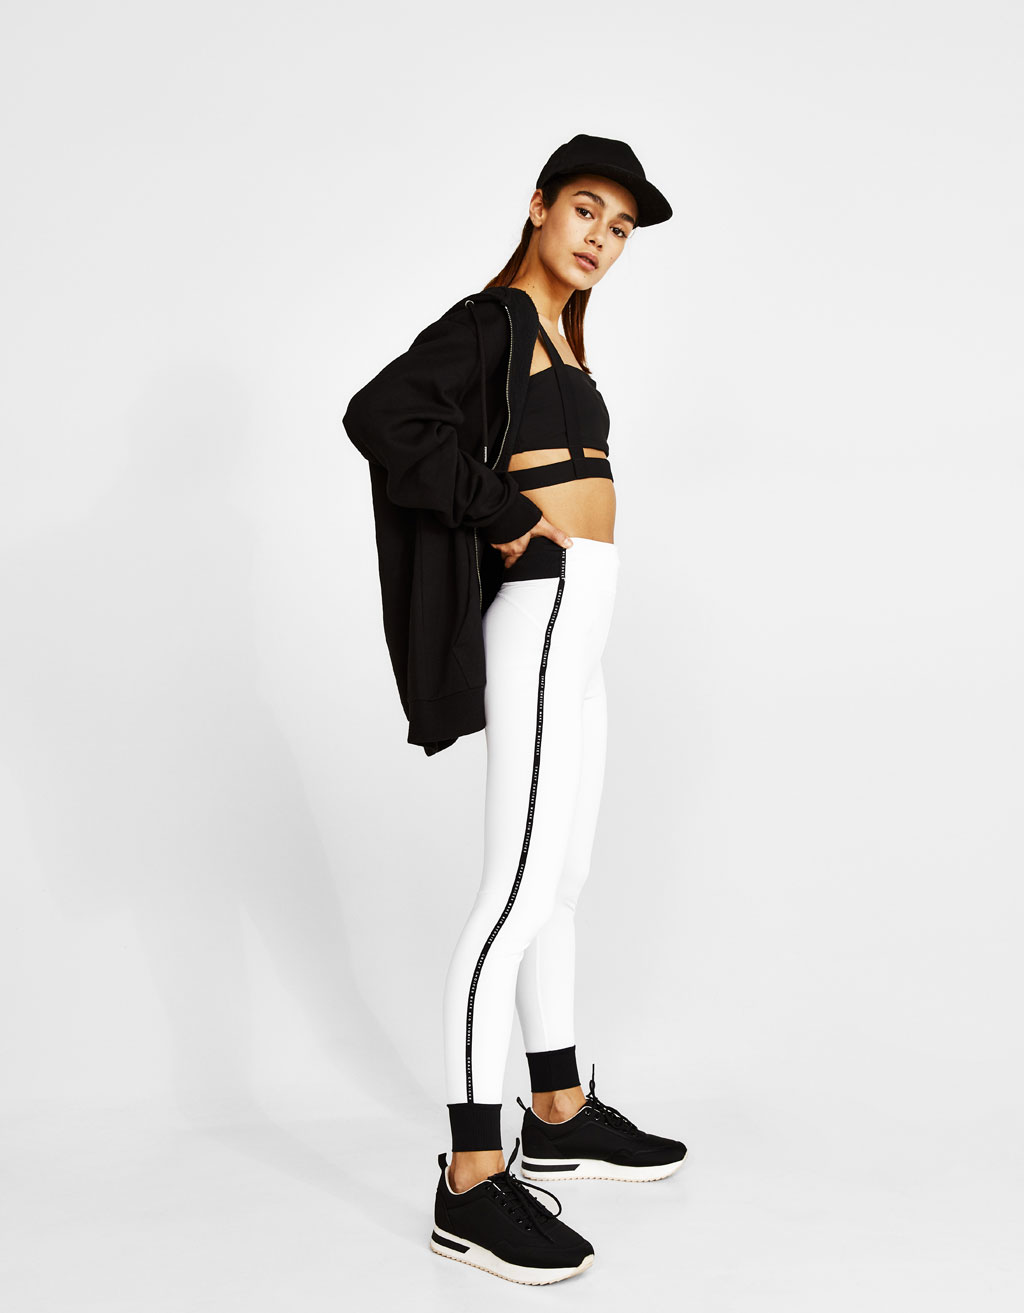 Sportlegging met contrastbaan